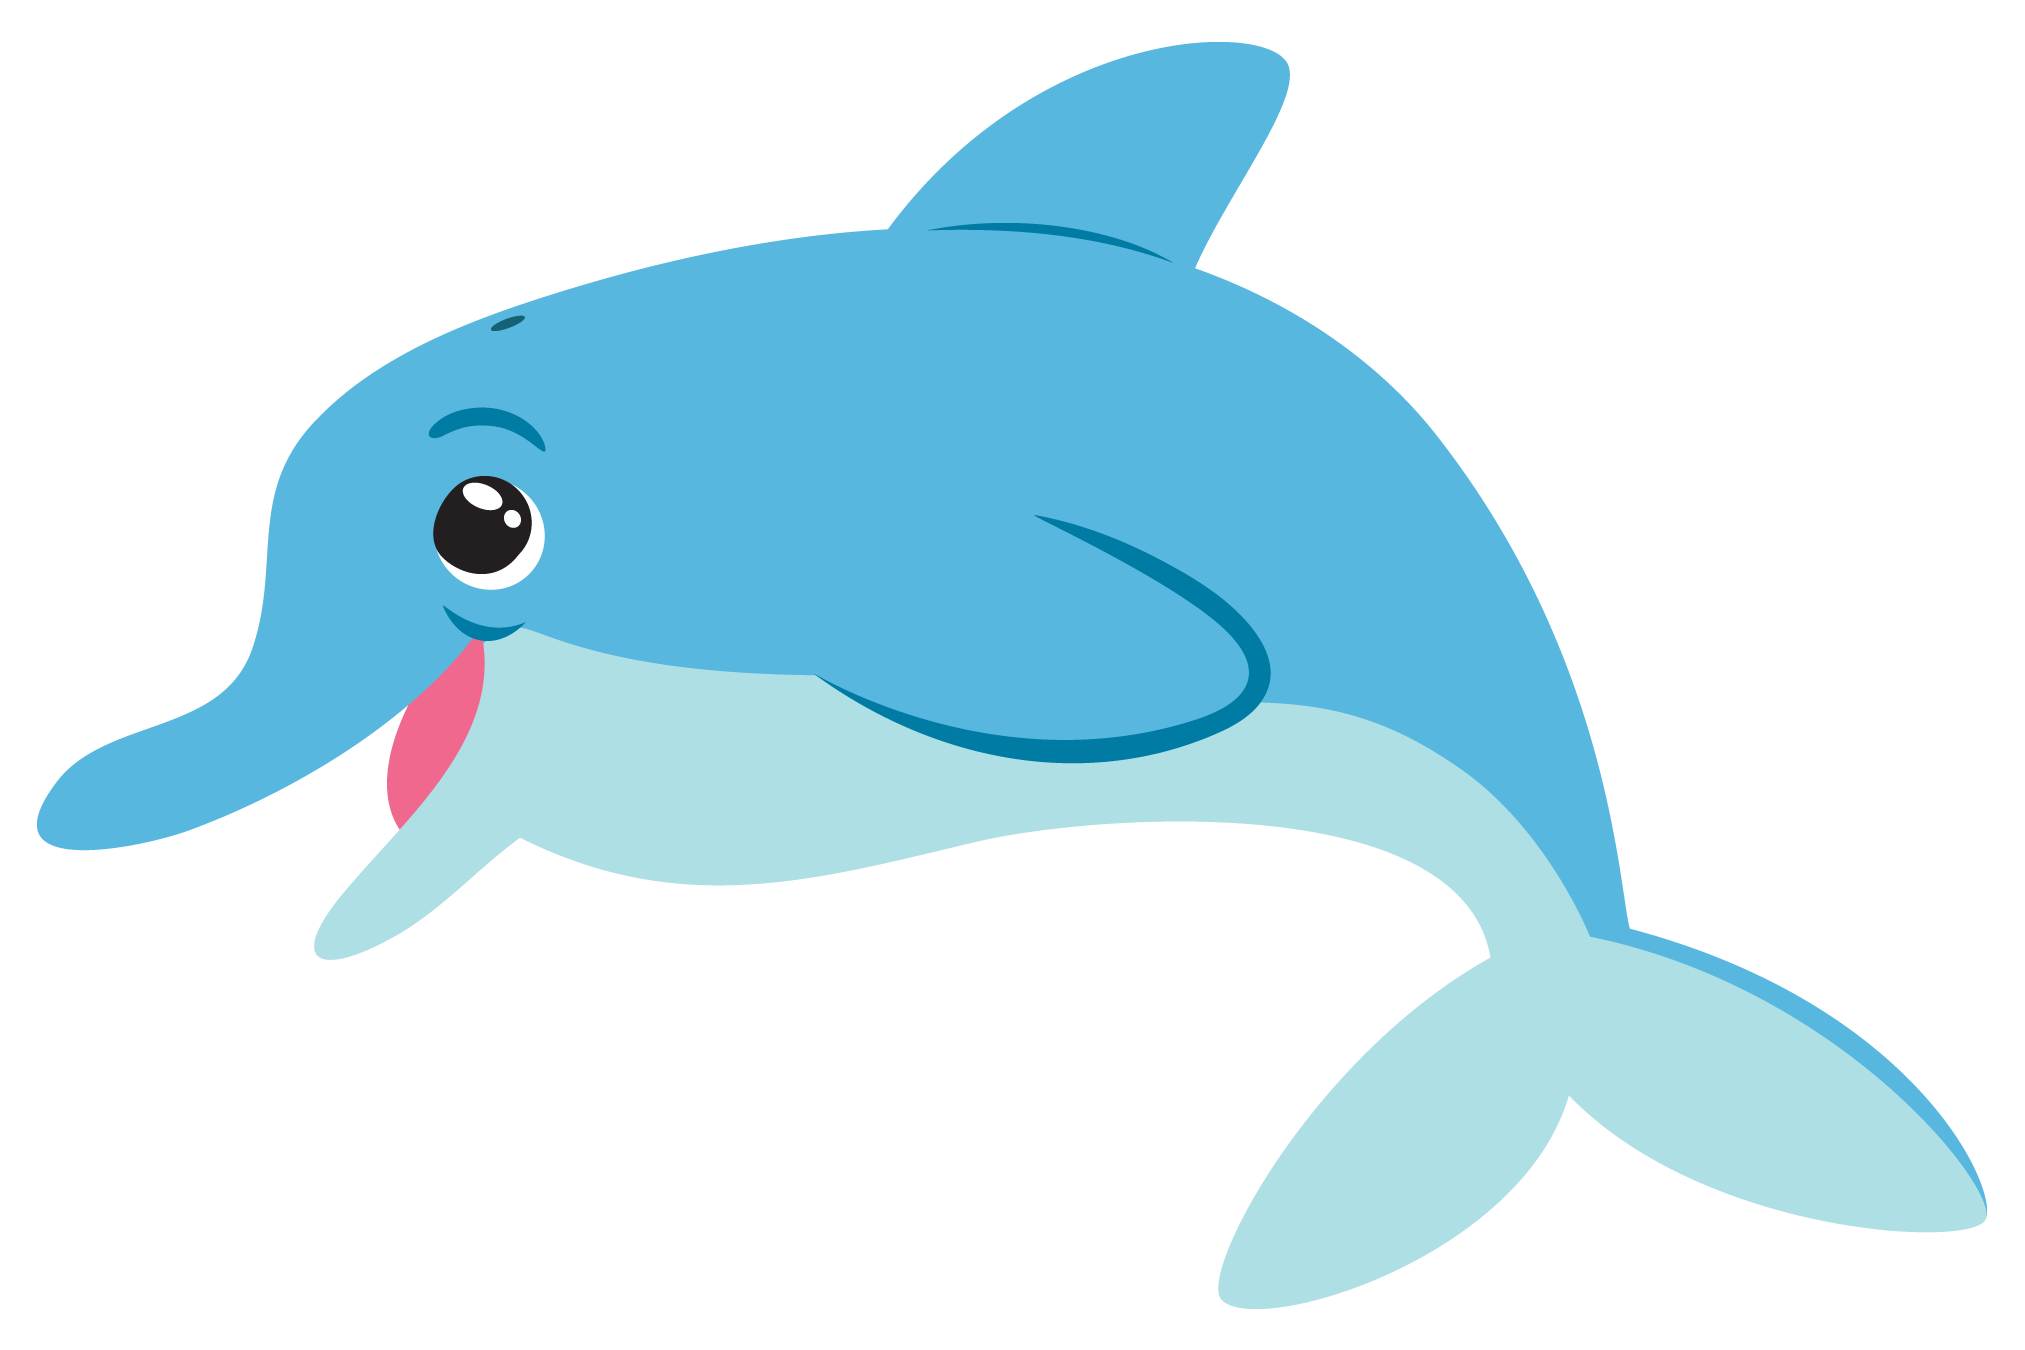 free dolphin clipart at getdrawings com free for personal use free rh getdrawings com dolphins clipart black and white dolphin clipart black and white